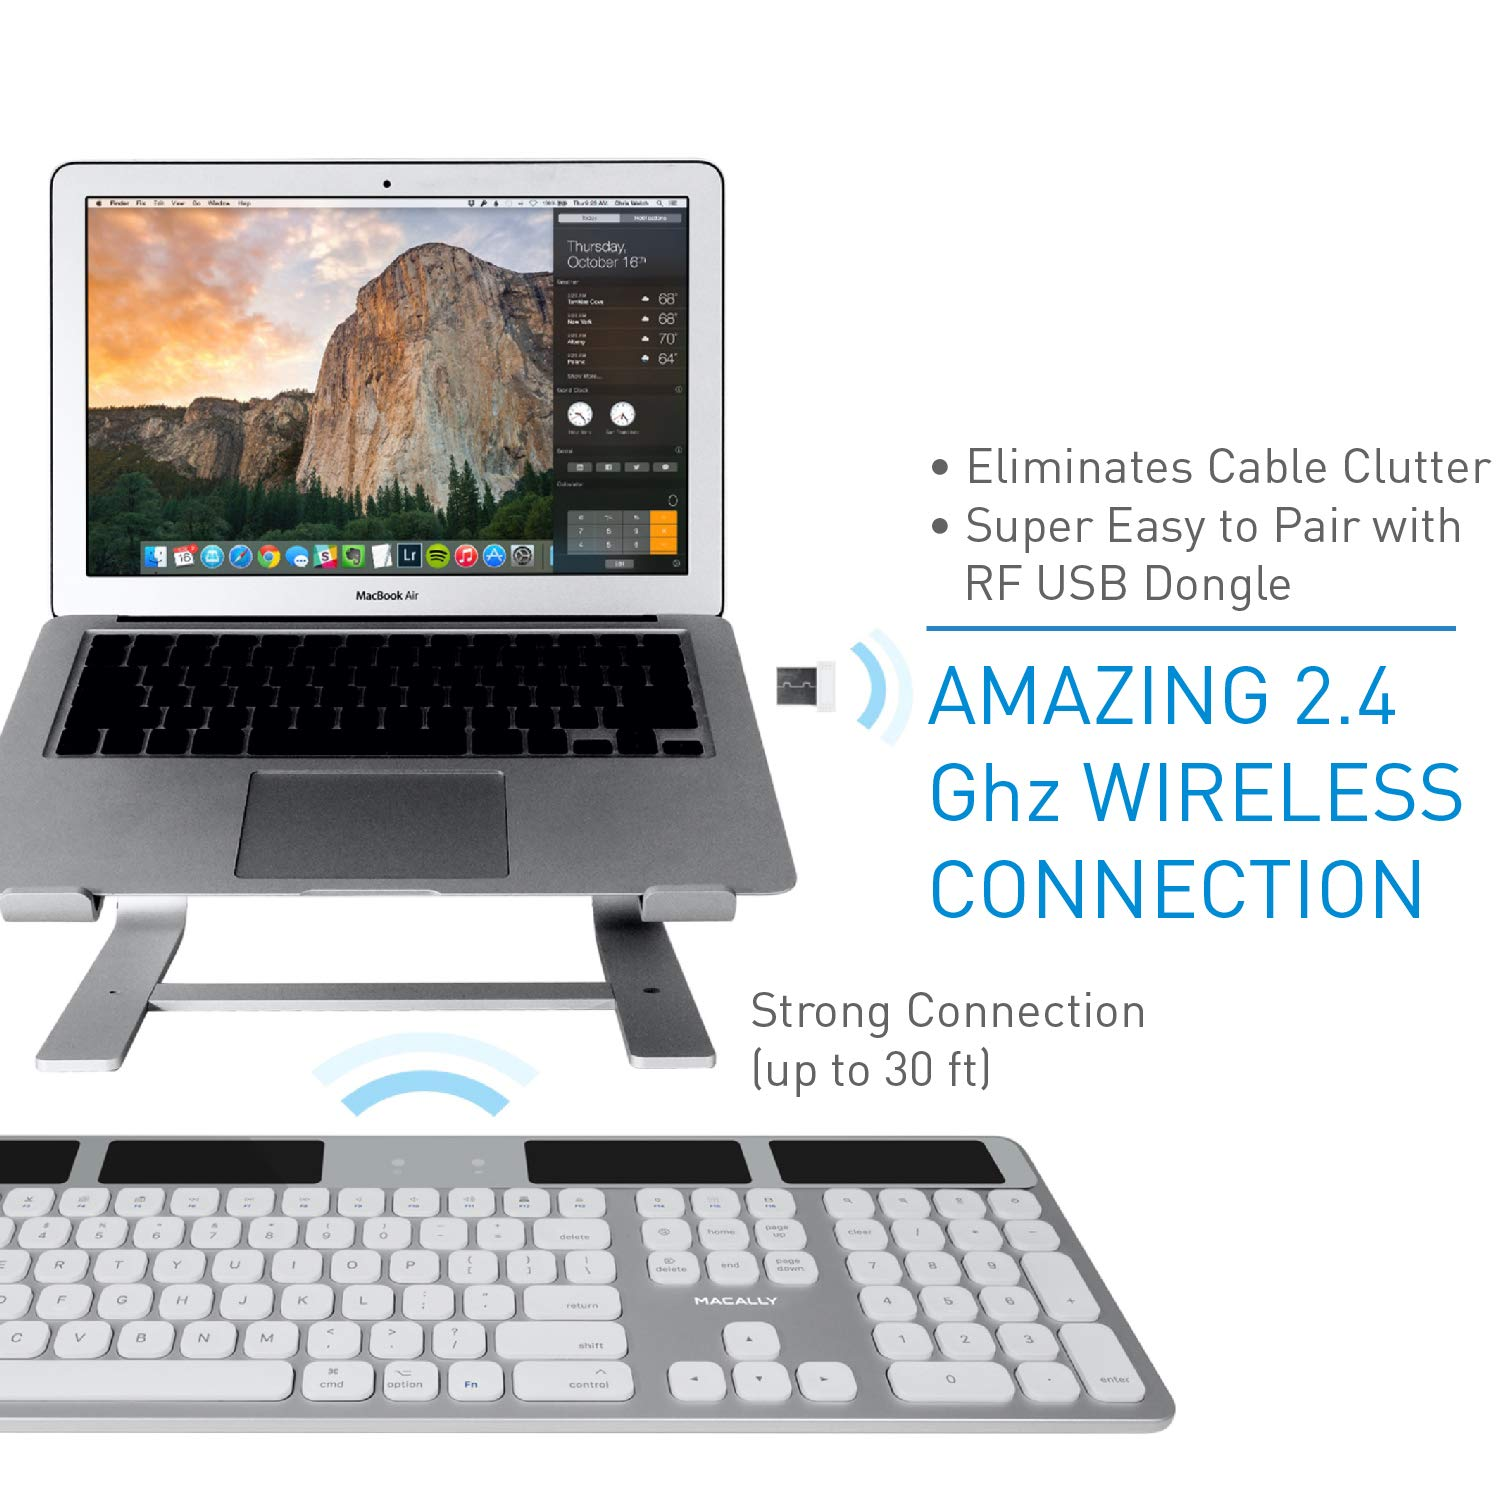 Macally Wireless Solar Keyboard for Mac Mini/Pro, iMac Desktop Computers & Apple MacBook Pro/Air Laptops | 2.4 Ghz RF USB Dongle | Caps Lock/Battery Indicators - Silver Aluminum, Gray by Macally (Image #2)